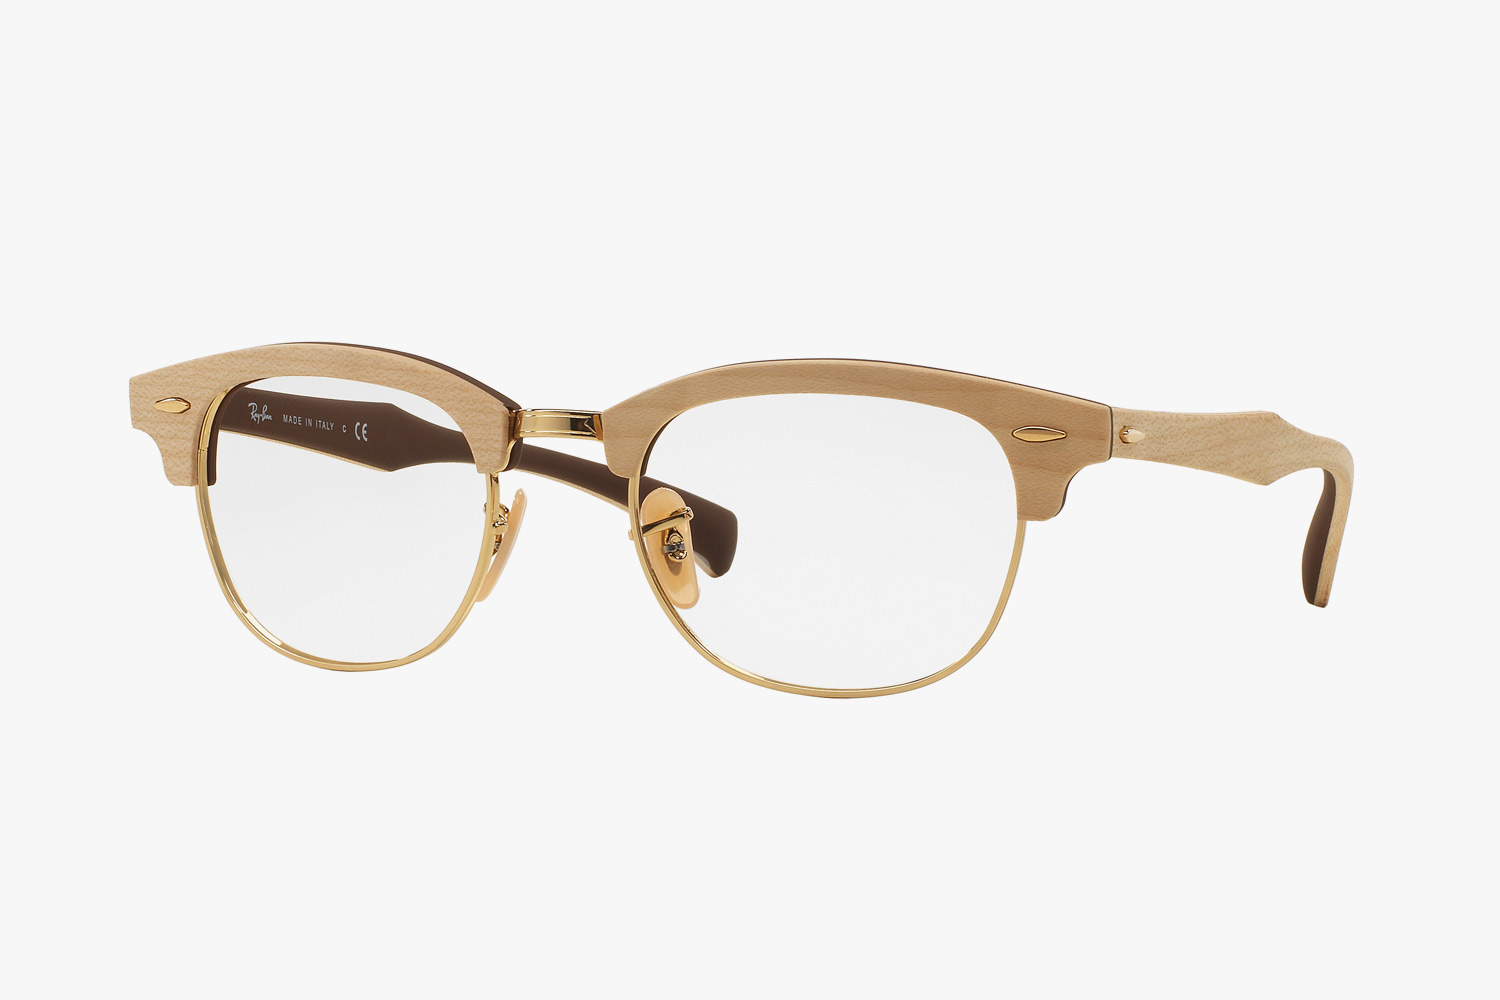 Ray-Ban-Wood-Clubmaster-Glasses-03